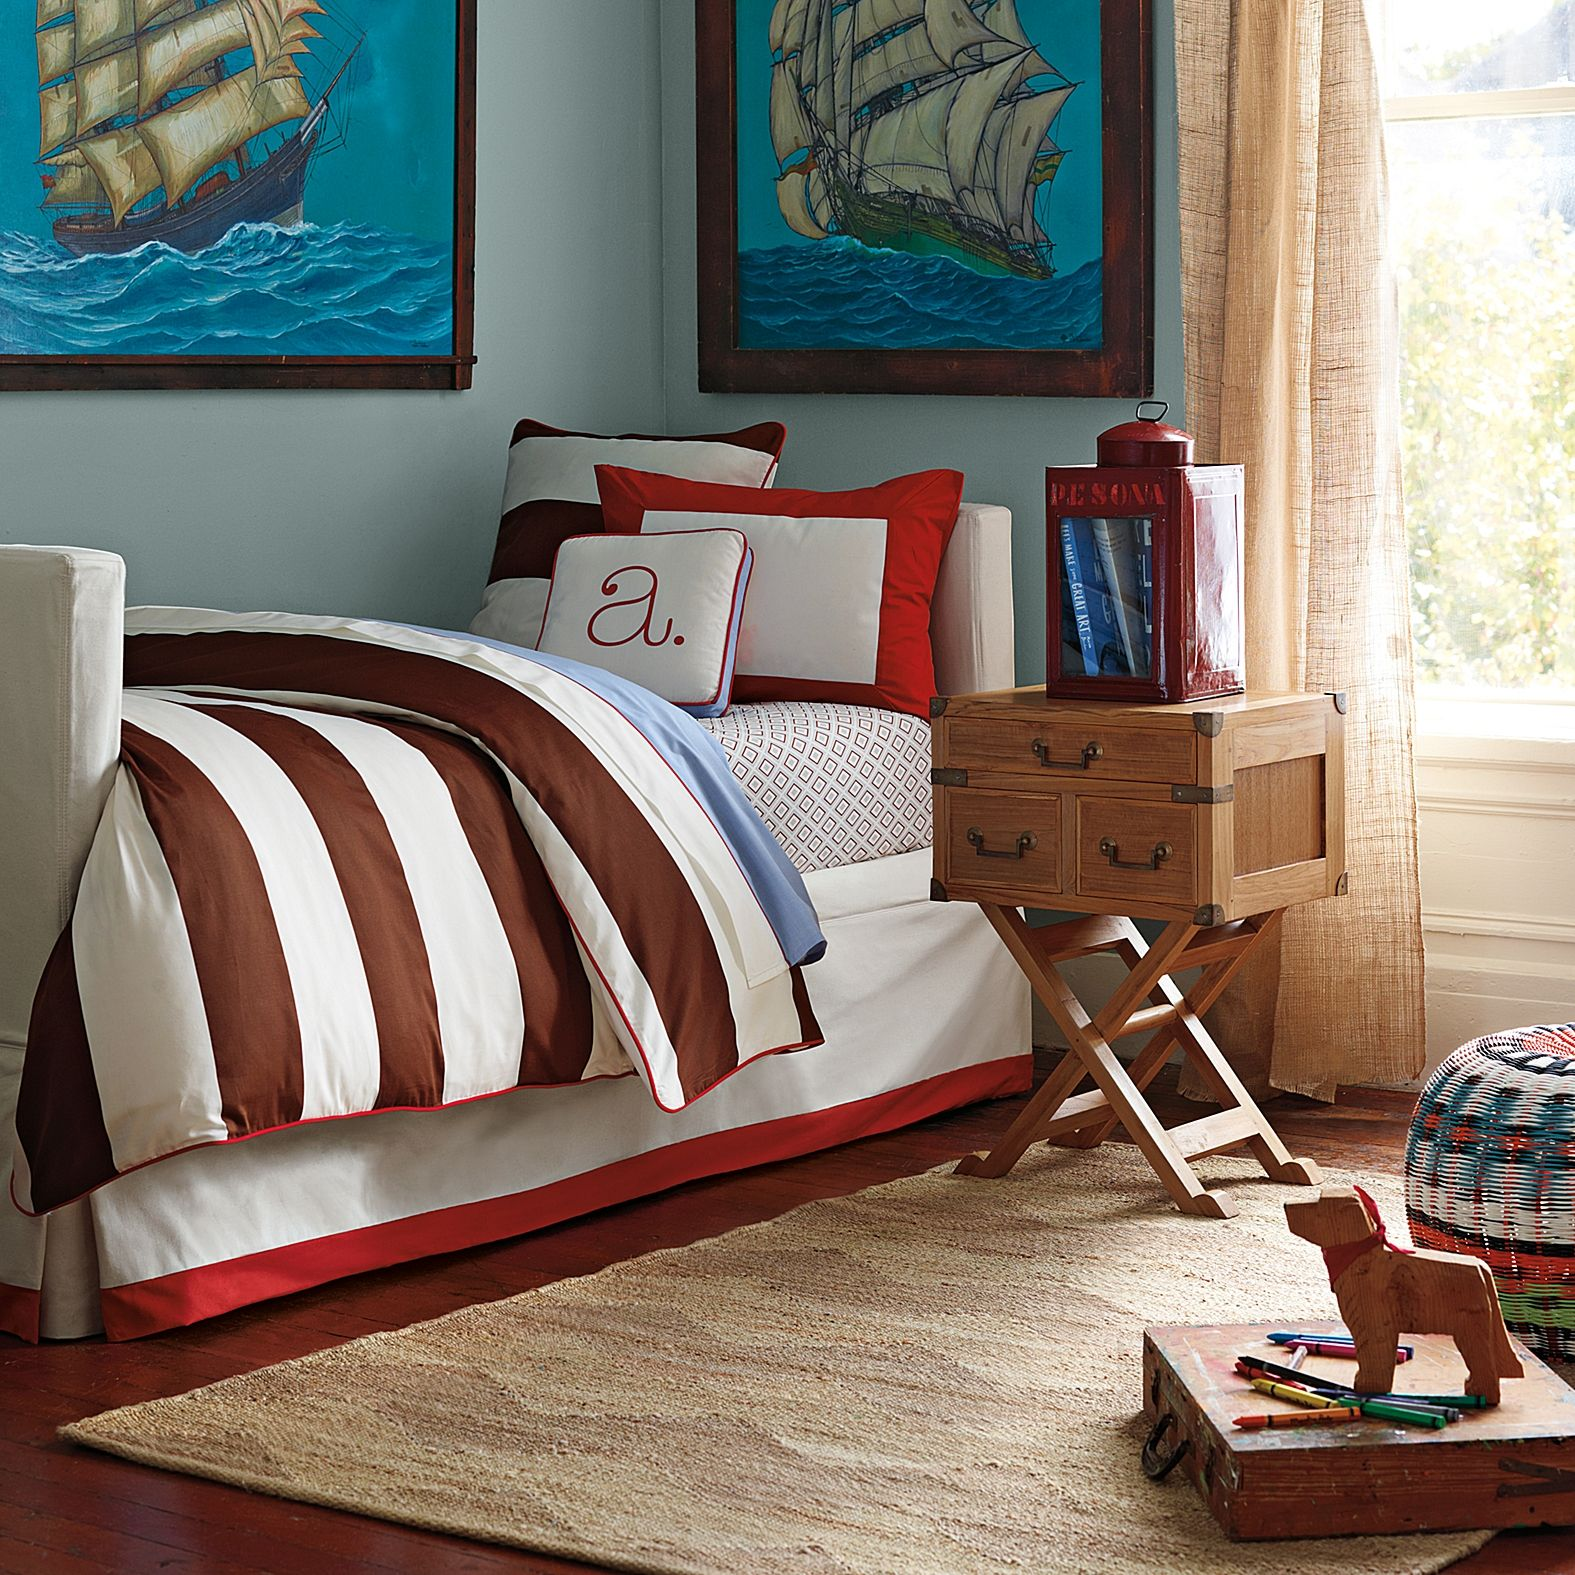 asher bedding for boys rooms serena lily love brown 14405 | 6b938b5448a4d6a6d1d67c10b66fd104